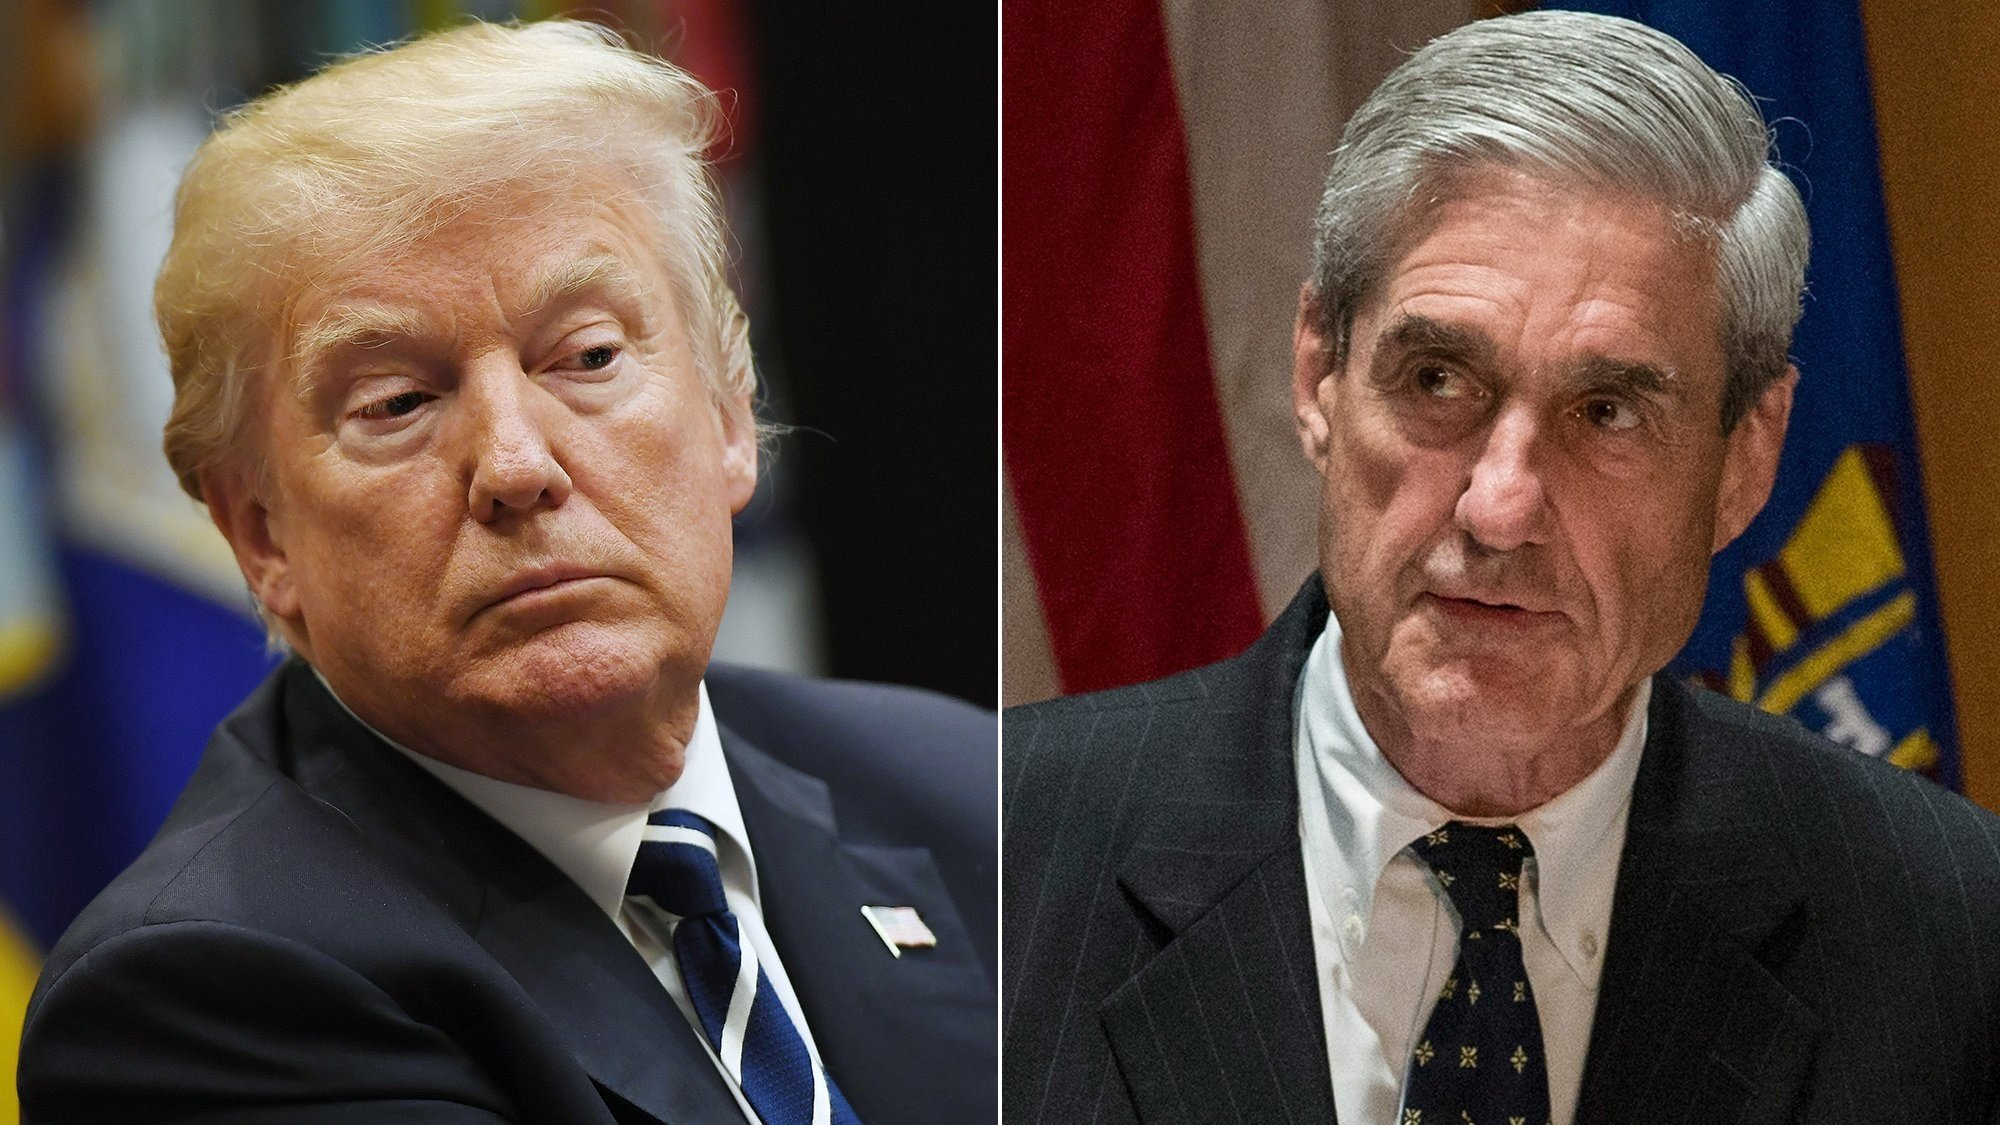 Senate committee backs bill to protect special counsel Mueller in bipartisan vote